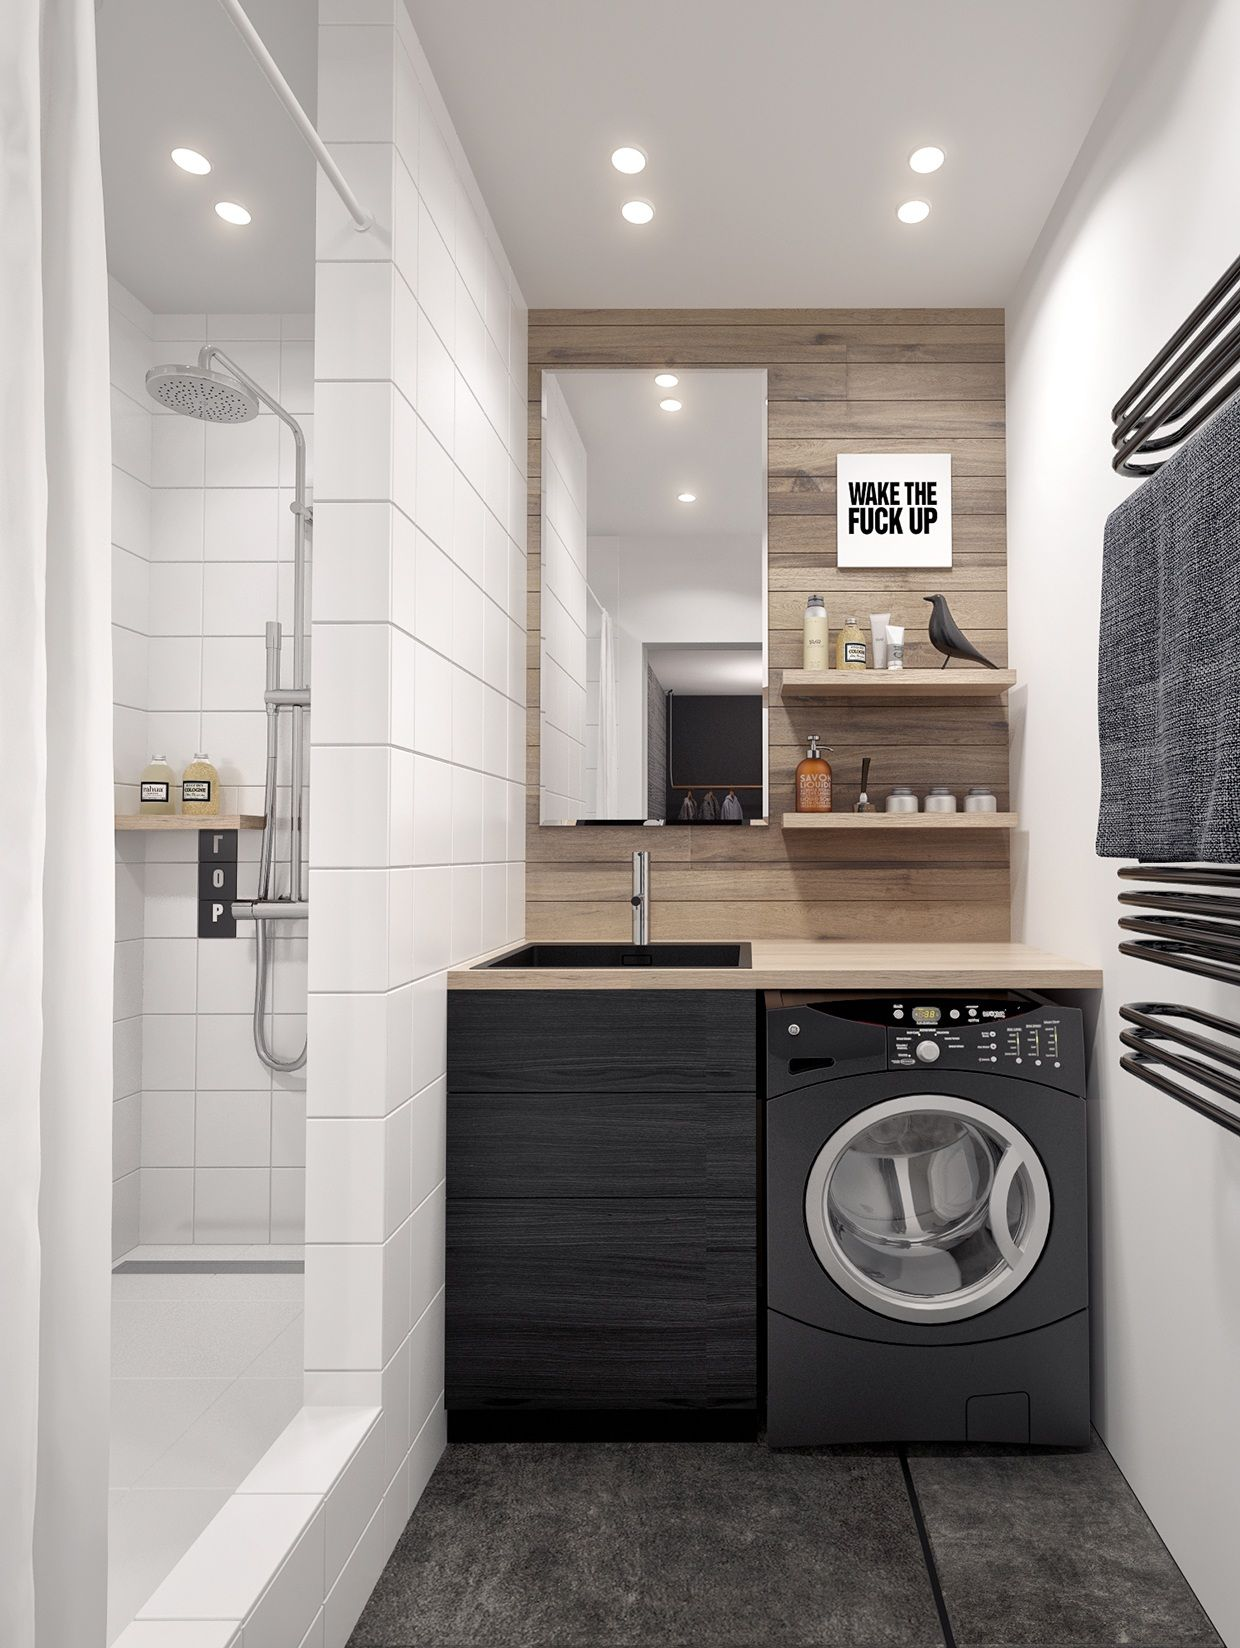 Captivating A Small Bathroom With Built In Laundry Tucked Under The Counter Is A  Finishing Touch On